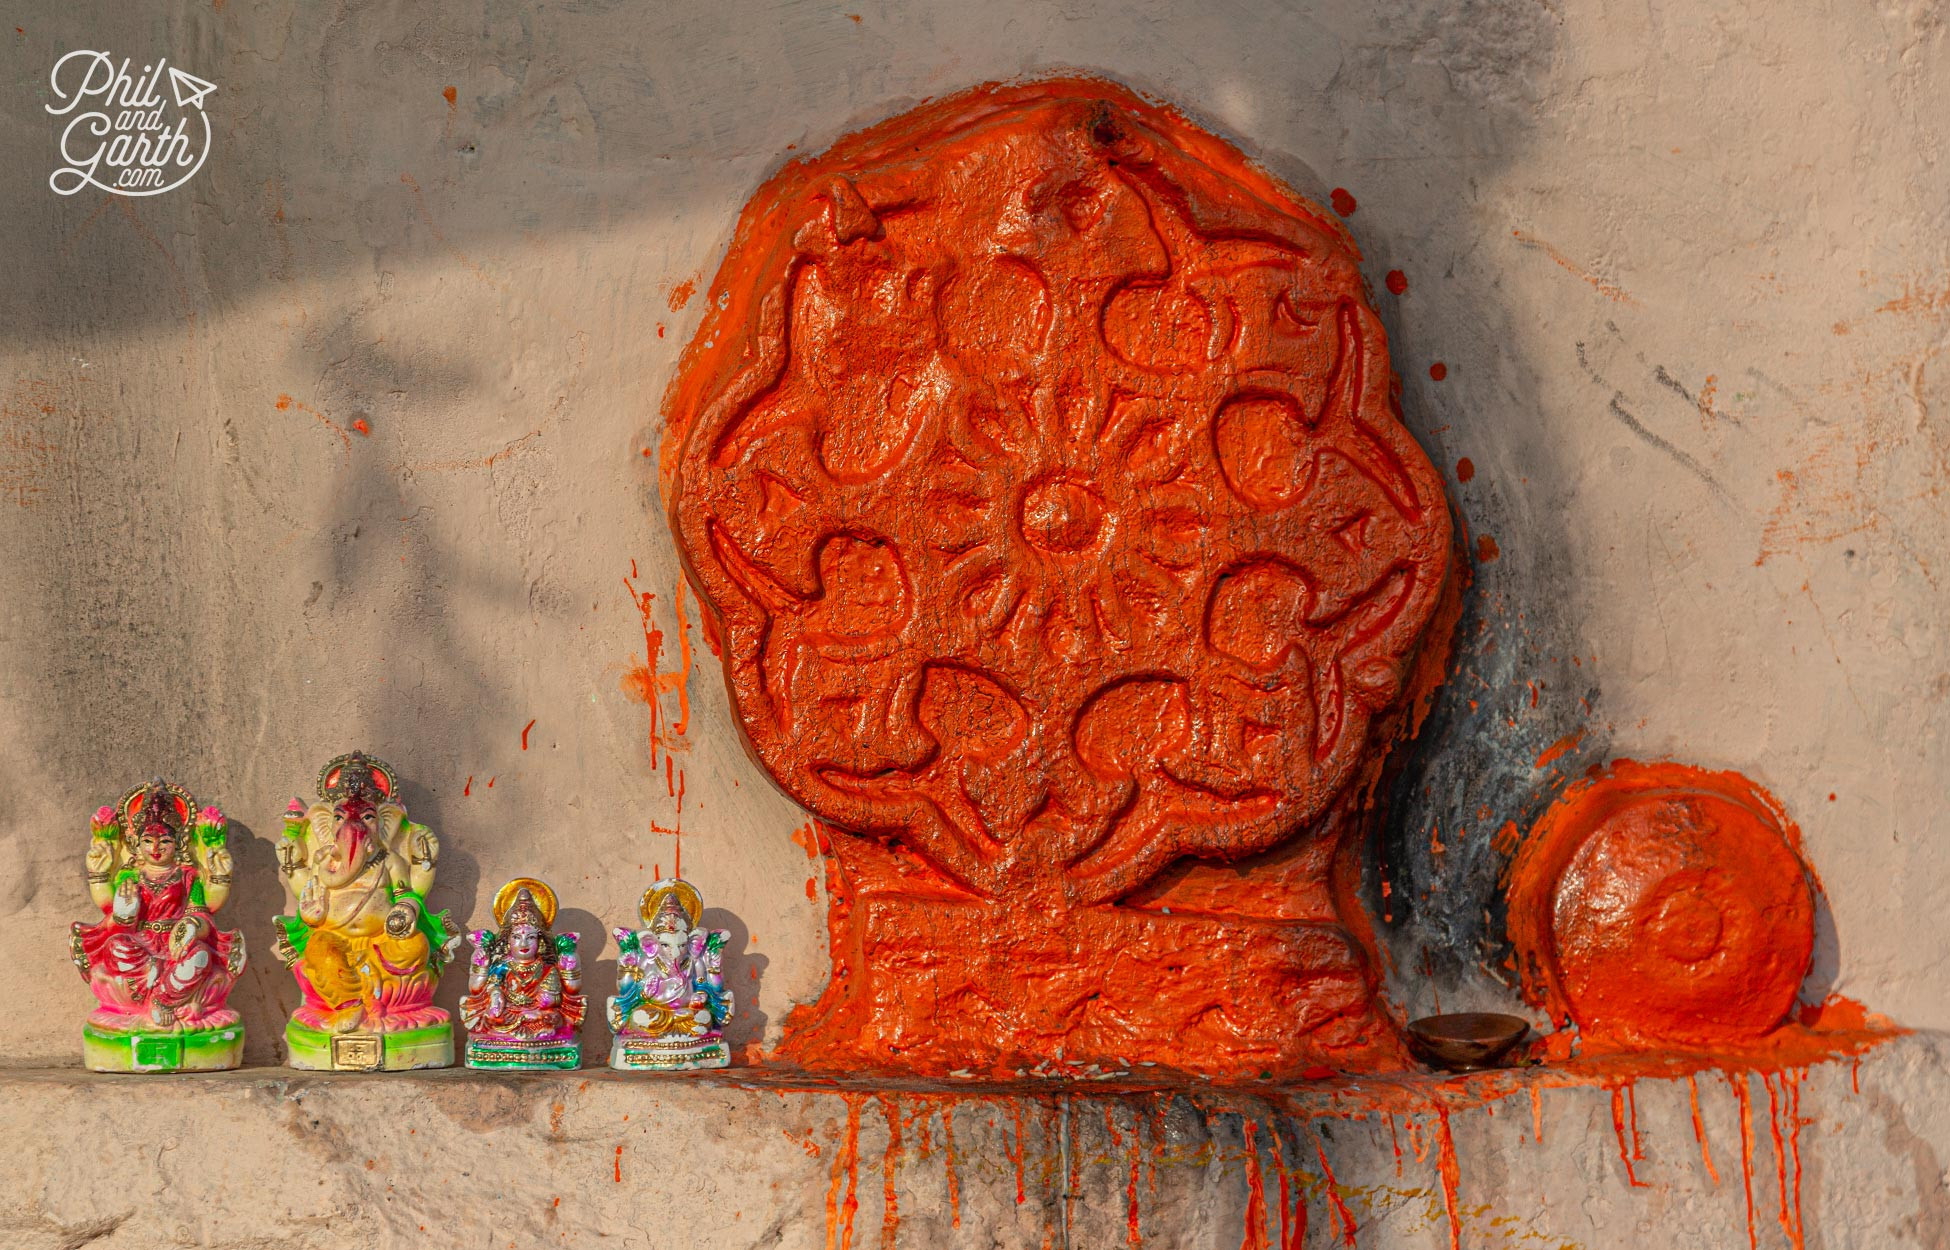 We discovered lots of little shrines on the ghats like this one